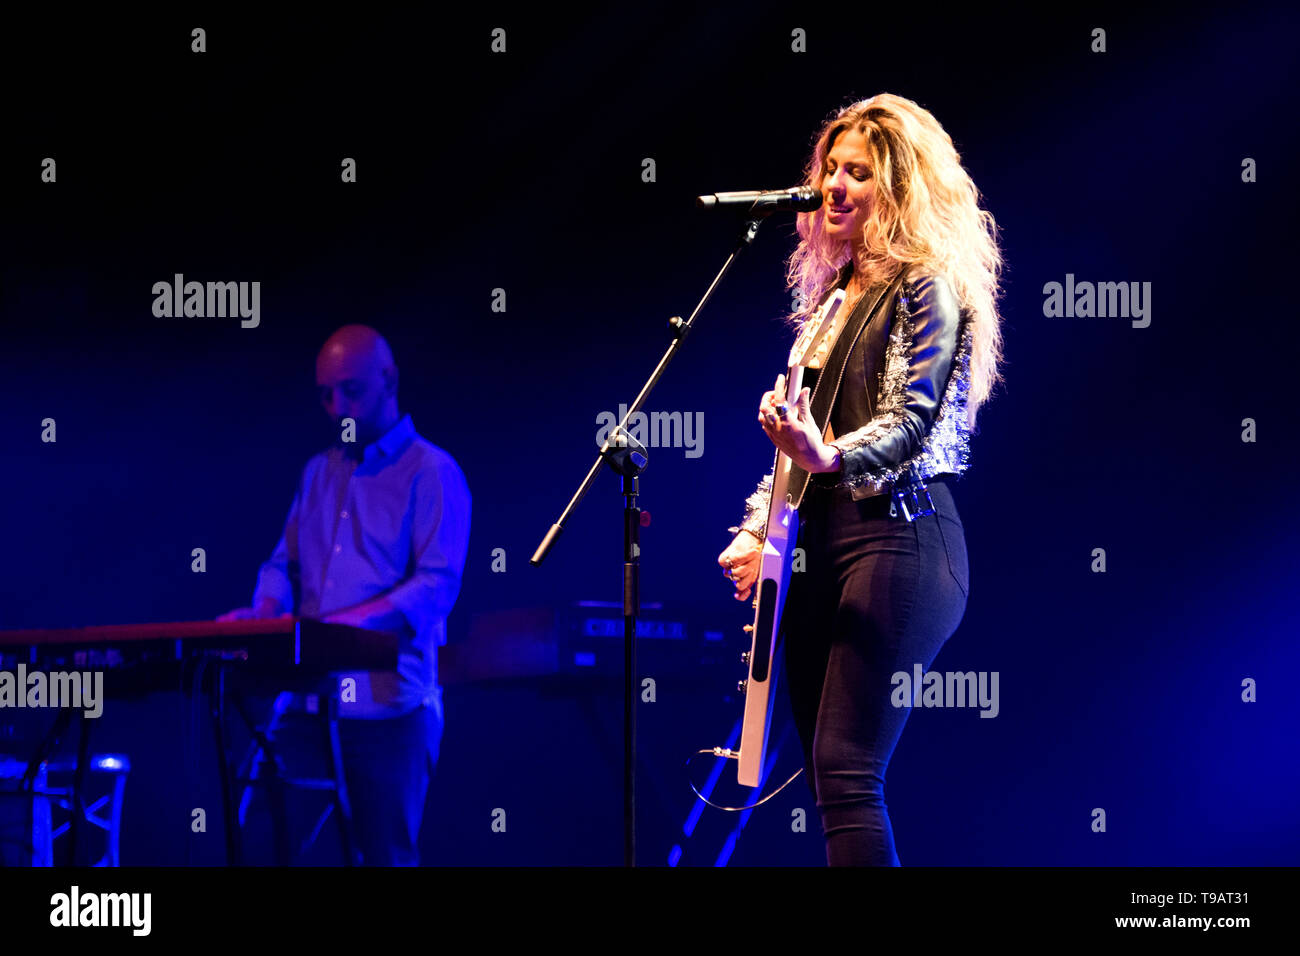 Gijon, Spain  17th May, 2019  Spanish singer Miriam Rodriguez